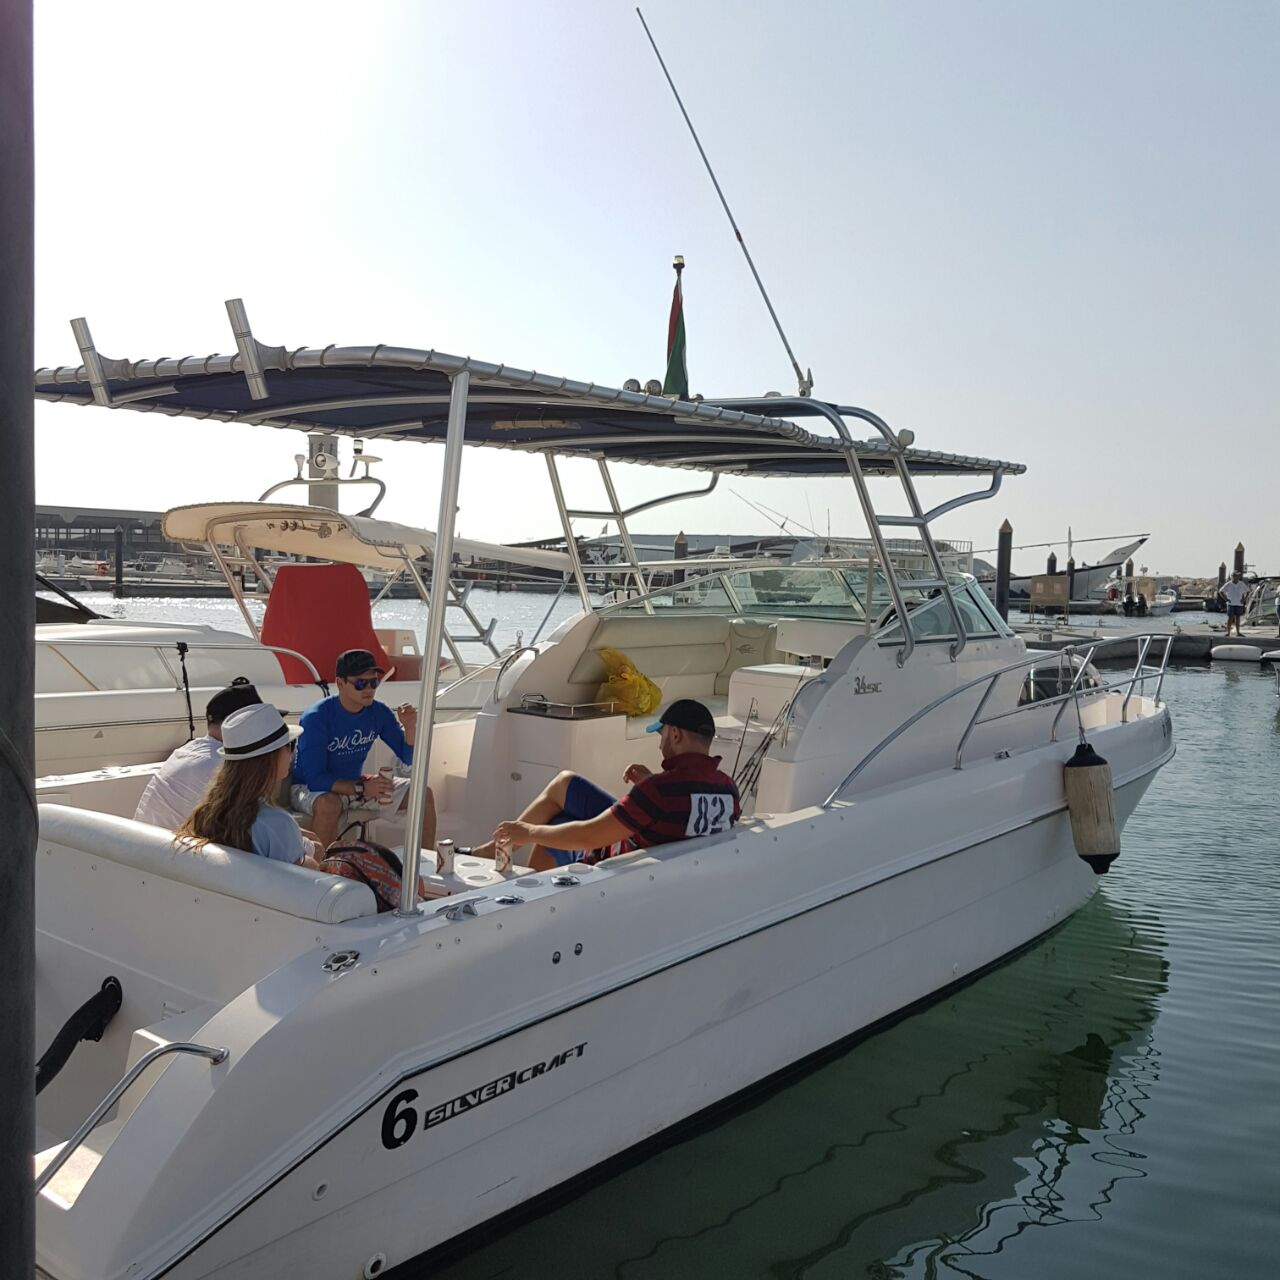 Luxurious Yacht In Dubai/Yacht Rental Charter yacht rental in Dubai